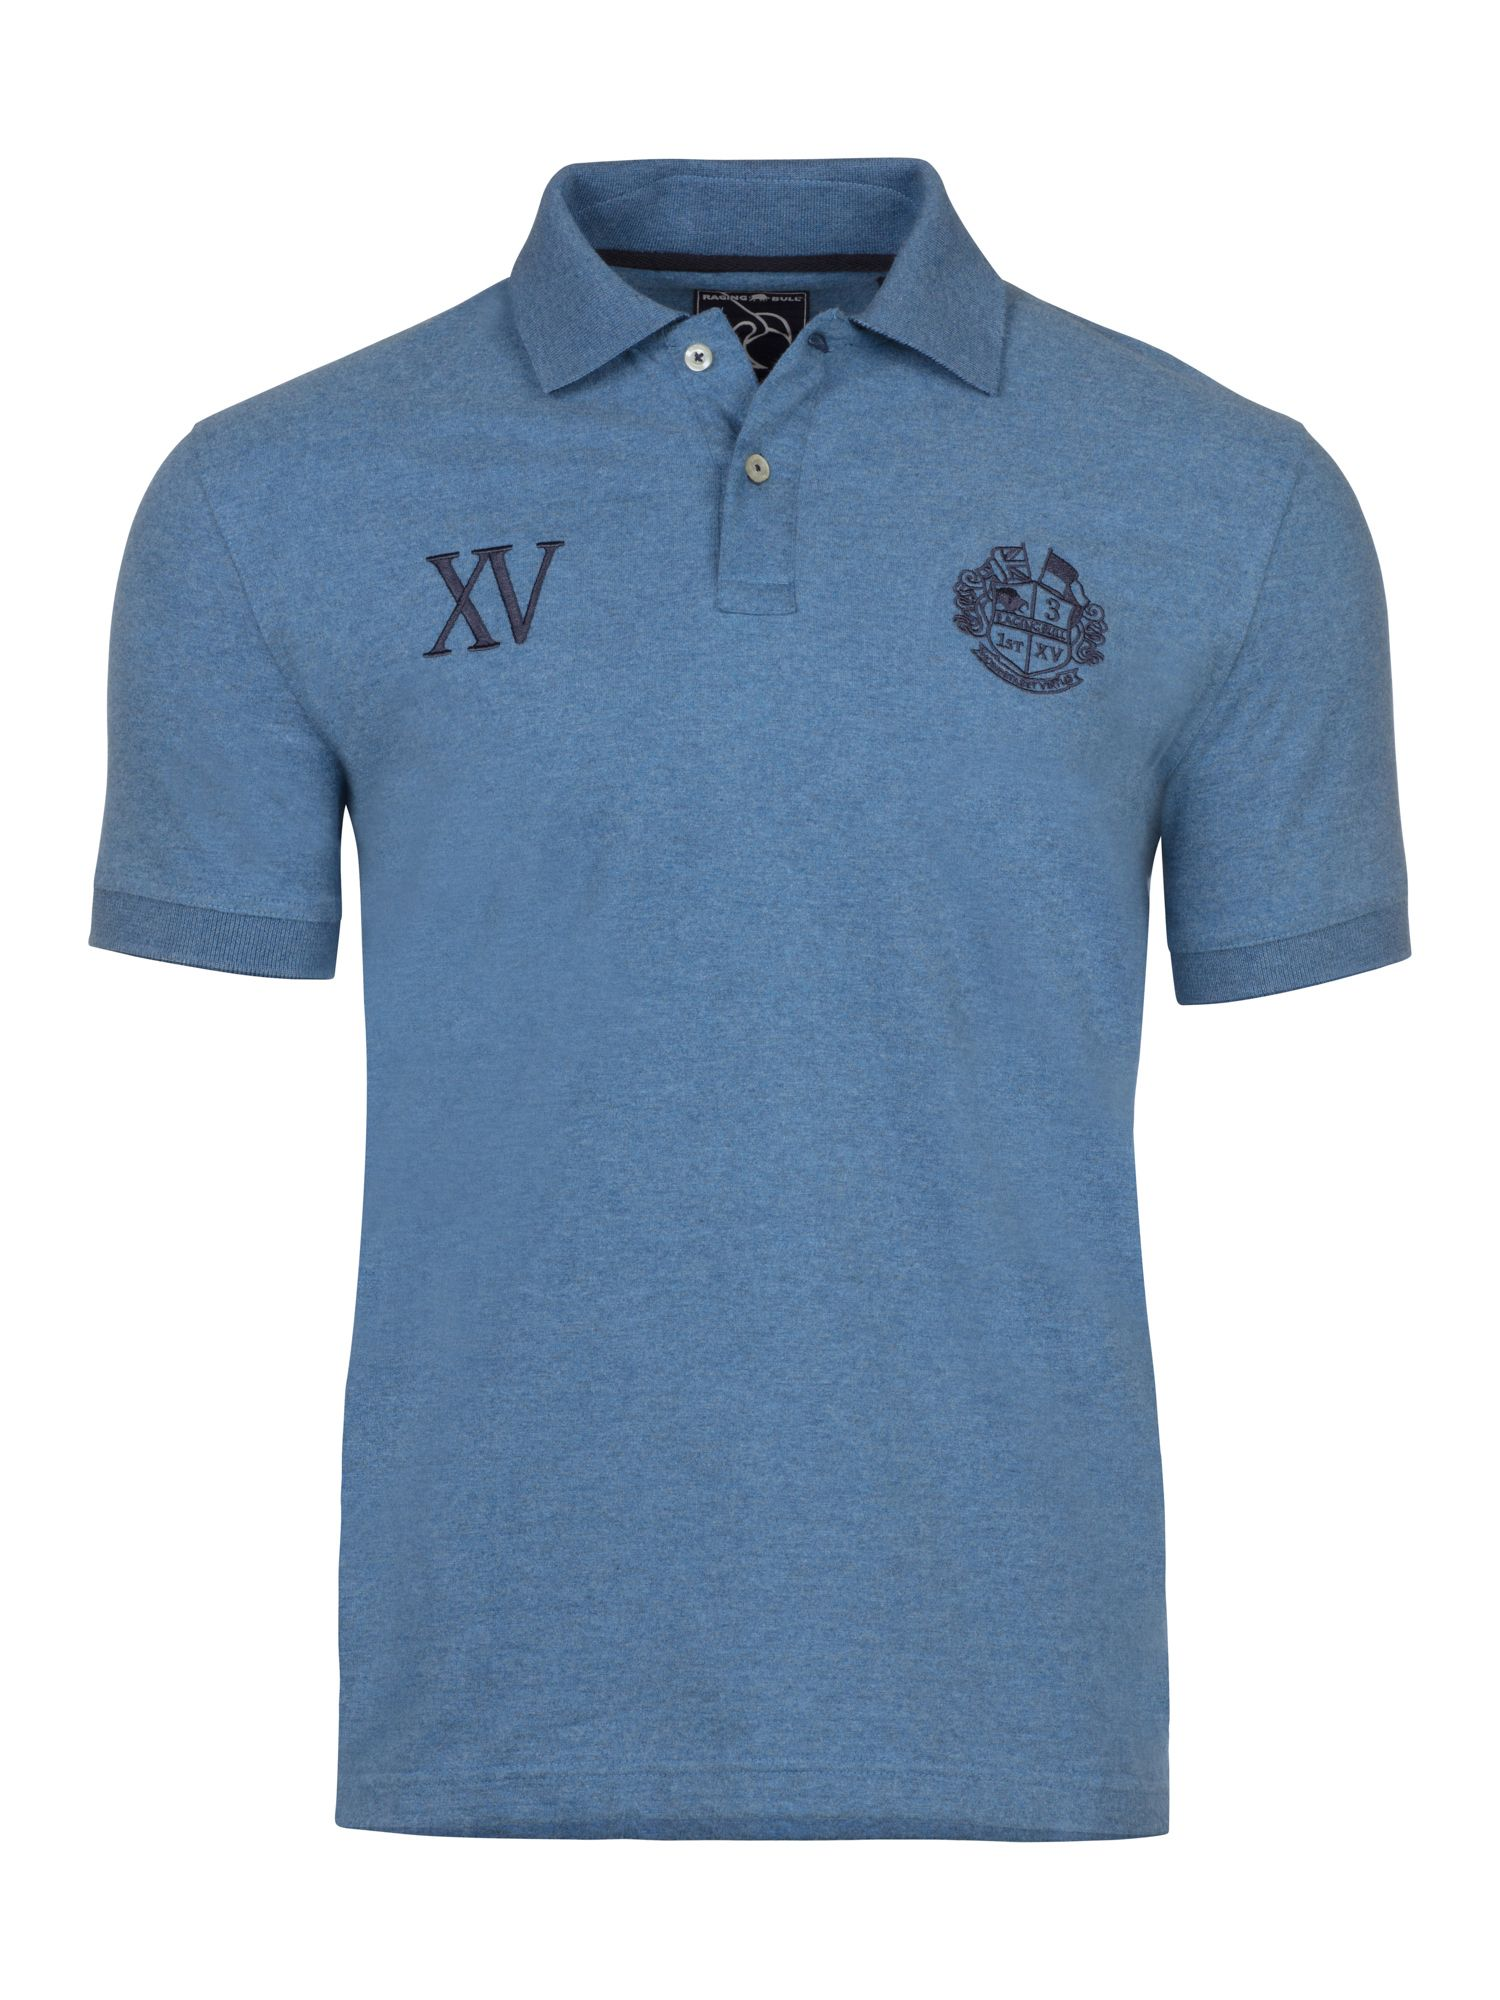 Men's Raging Bull Big & Tall First XV Jersey Polo, Denim